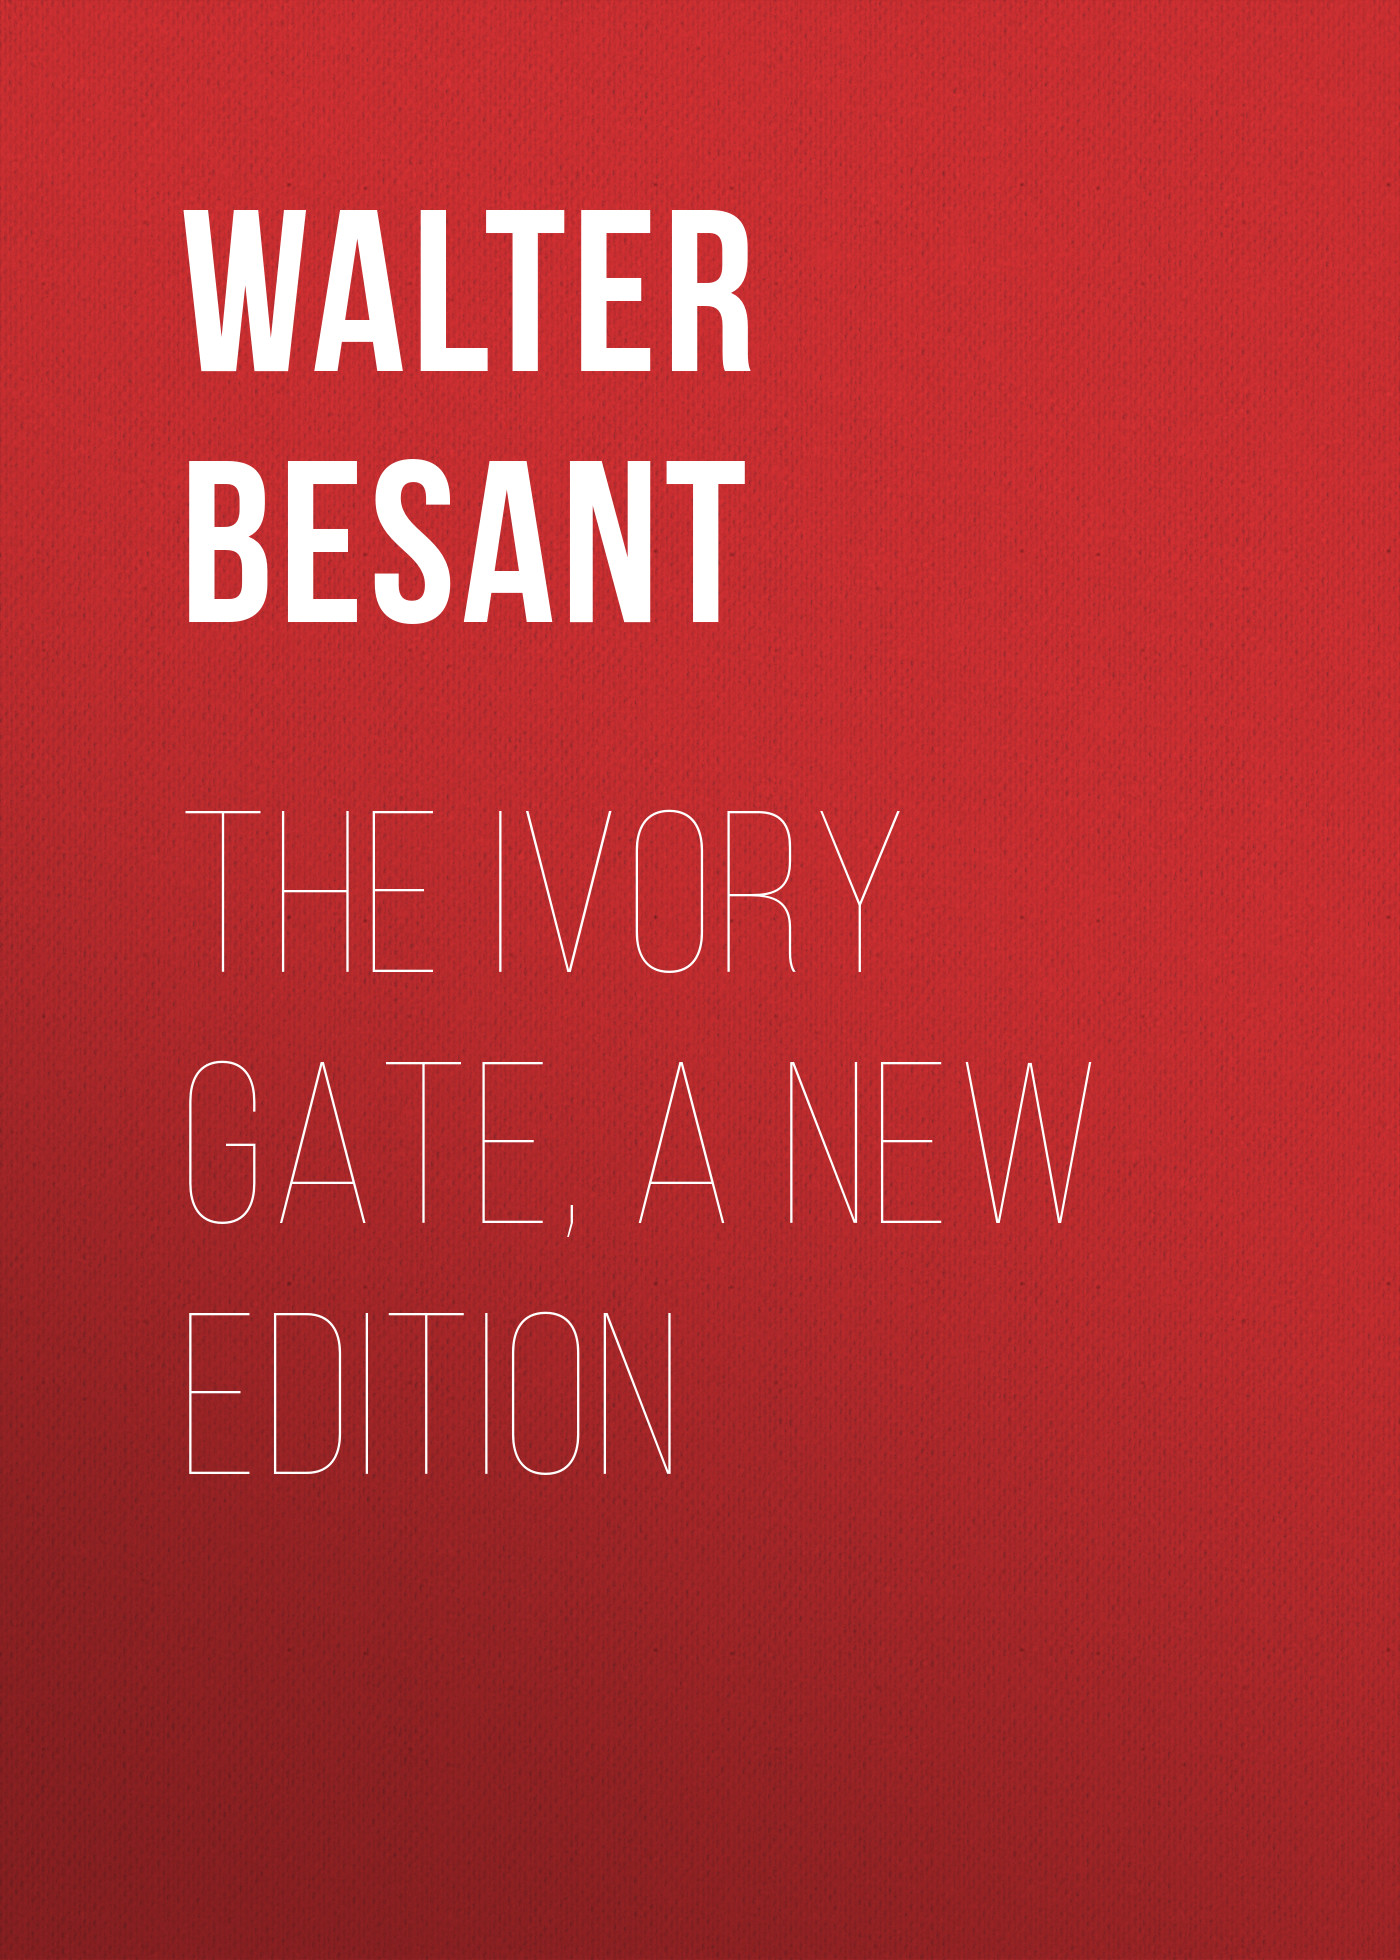 Walter Besant The Ivory Gate, a new edition kummer frederic arnold the ivory snuff box